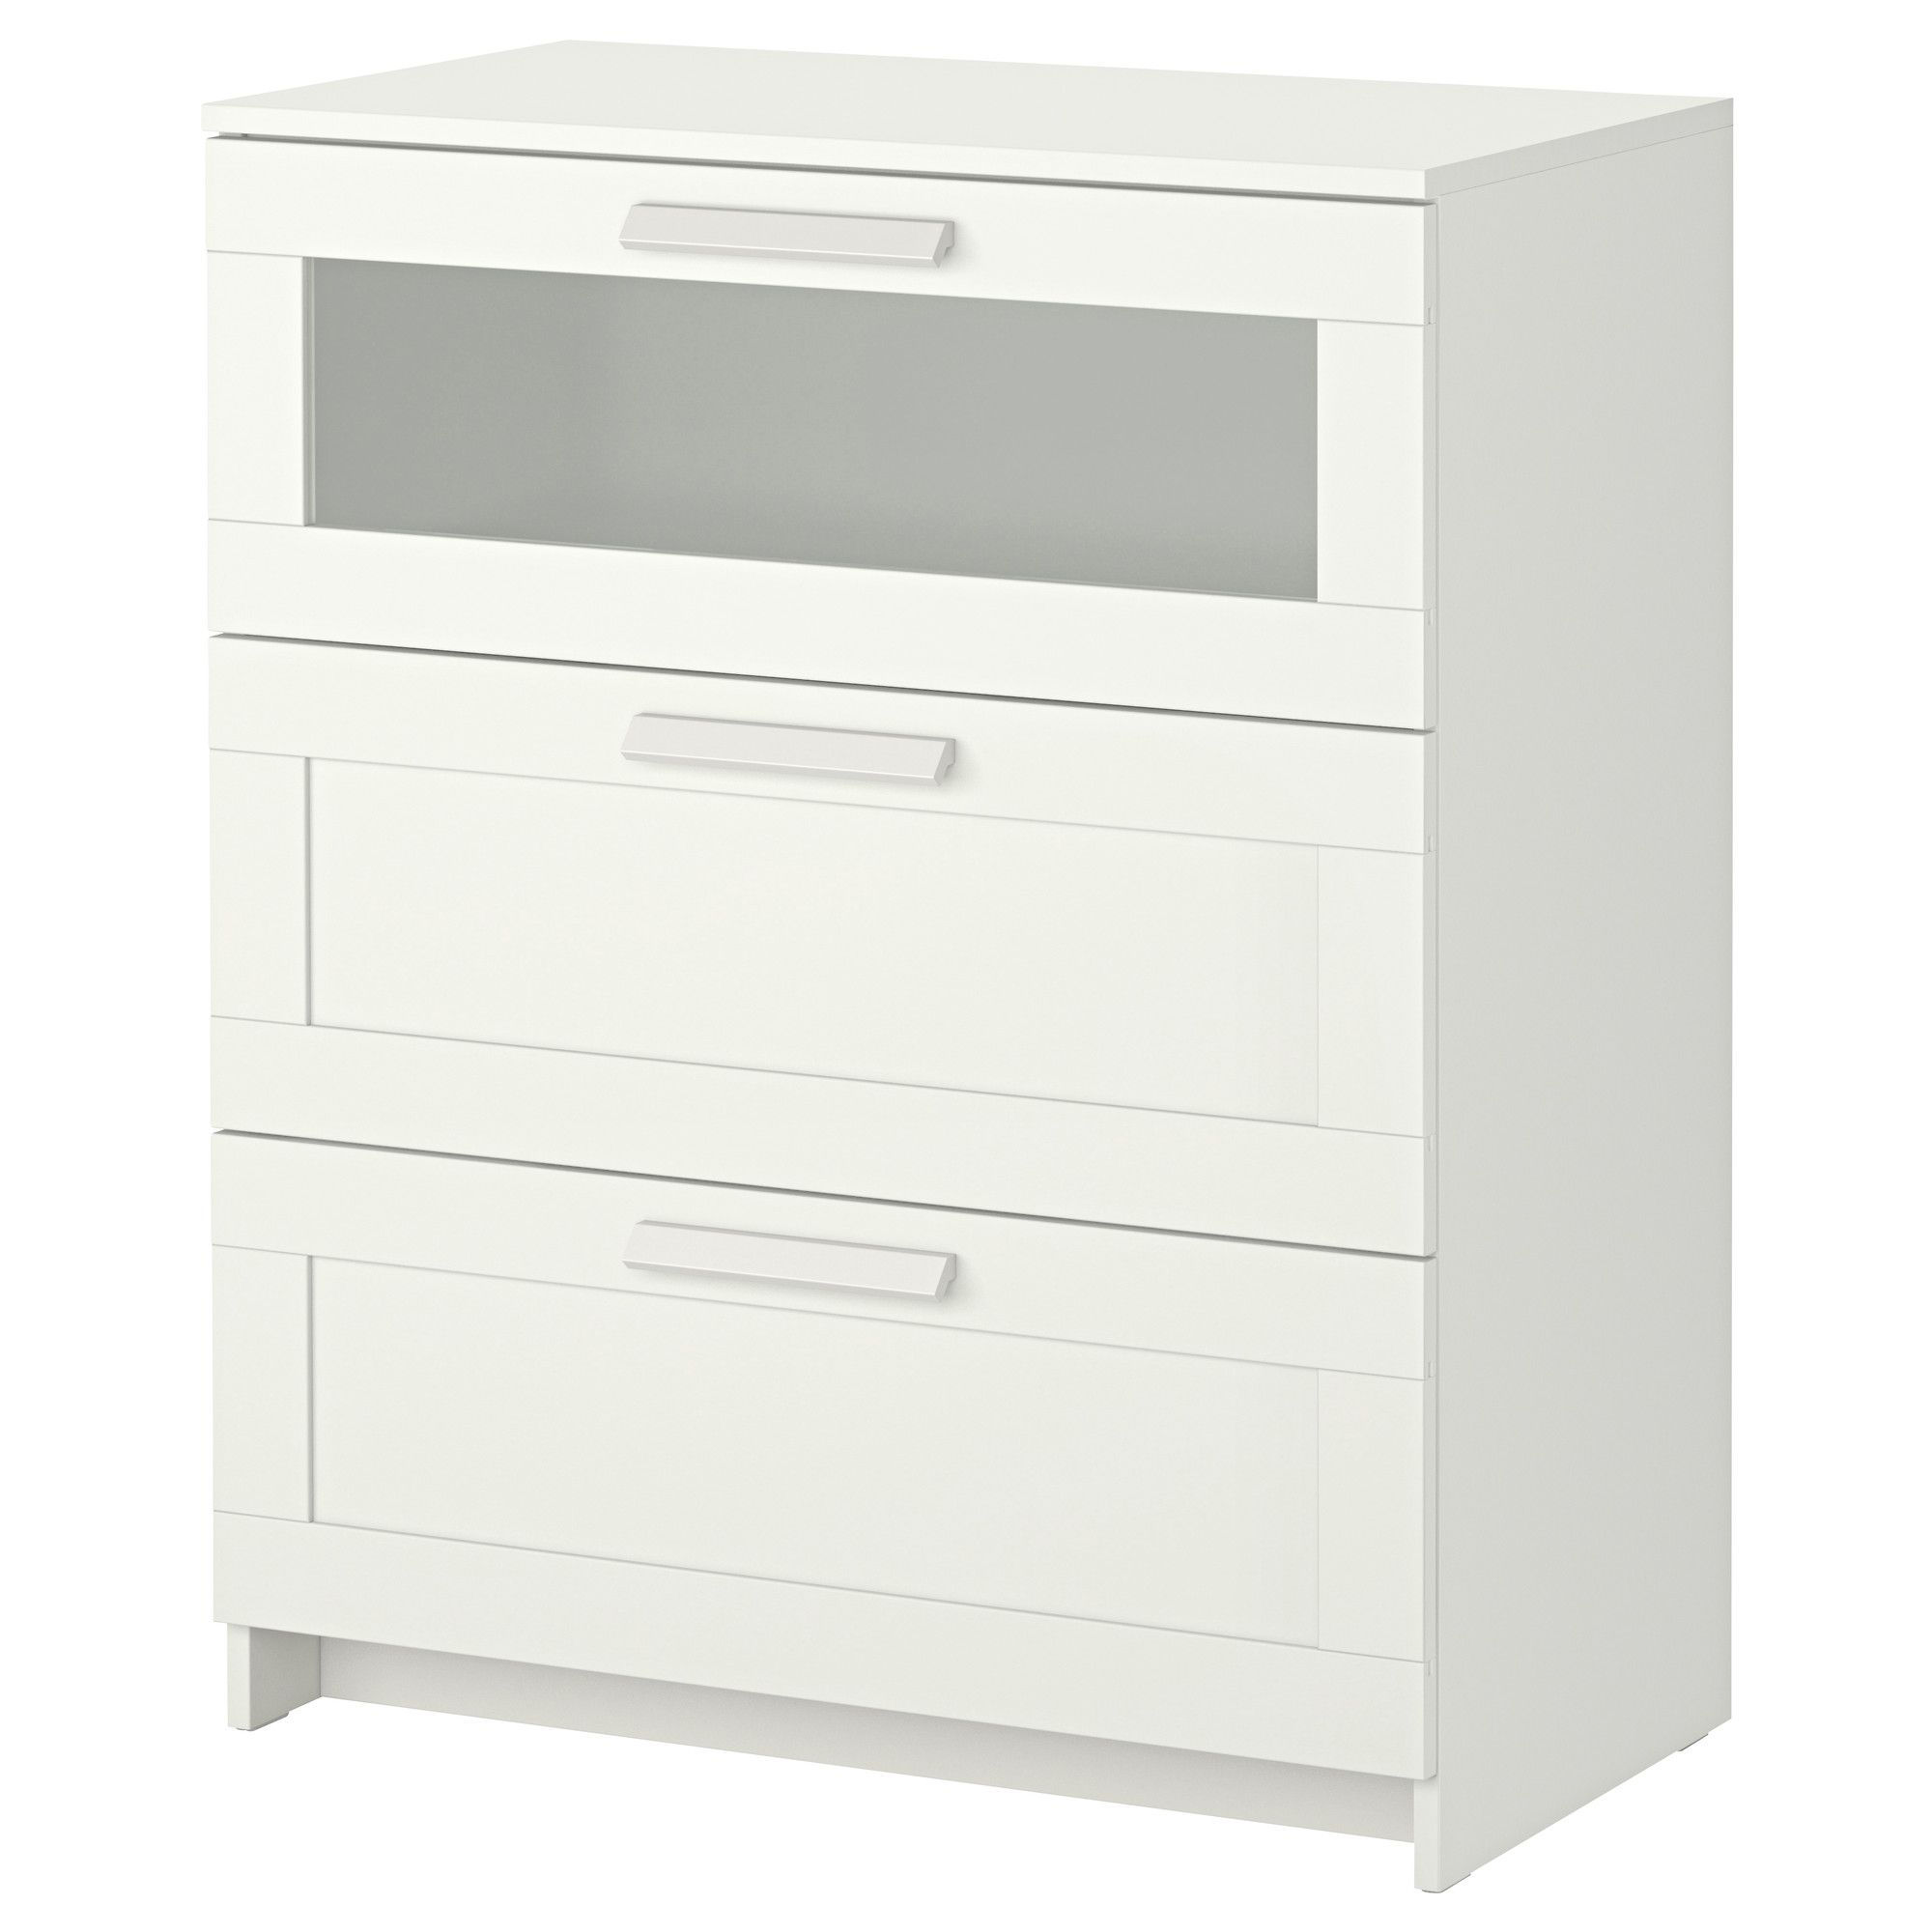 x cheap ikea drawers malm pic chest drawer coastal designs set dresser oak hemnes furniture top bedroom of